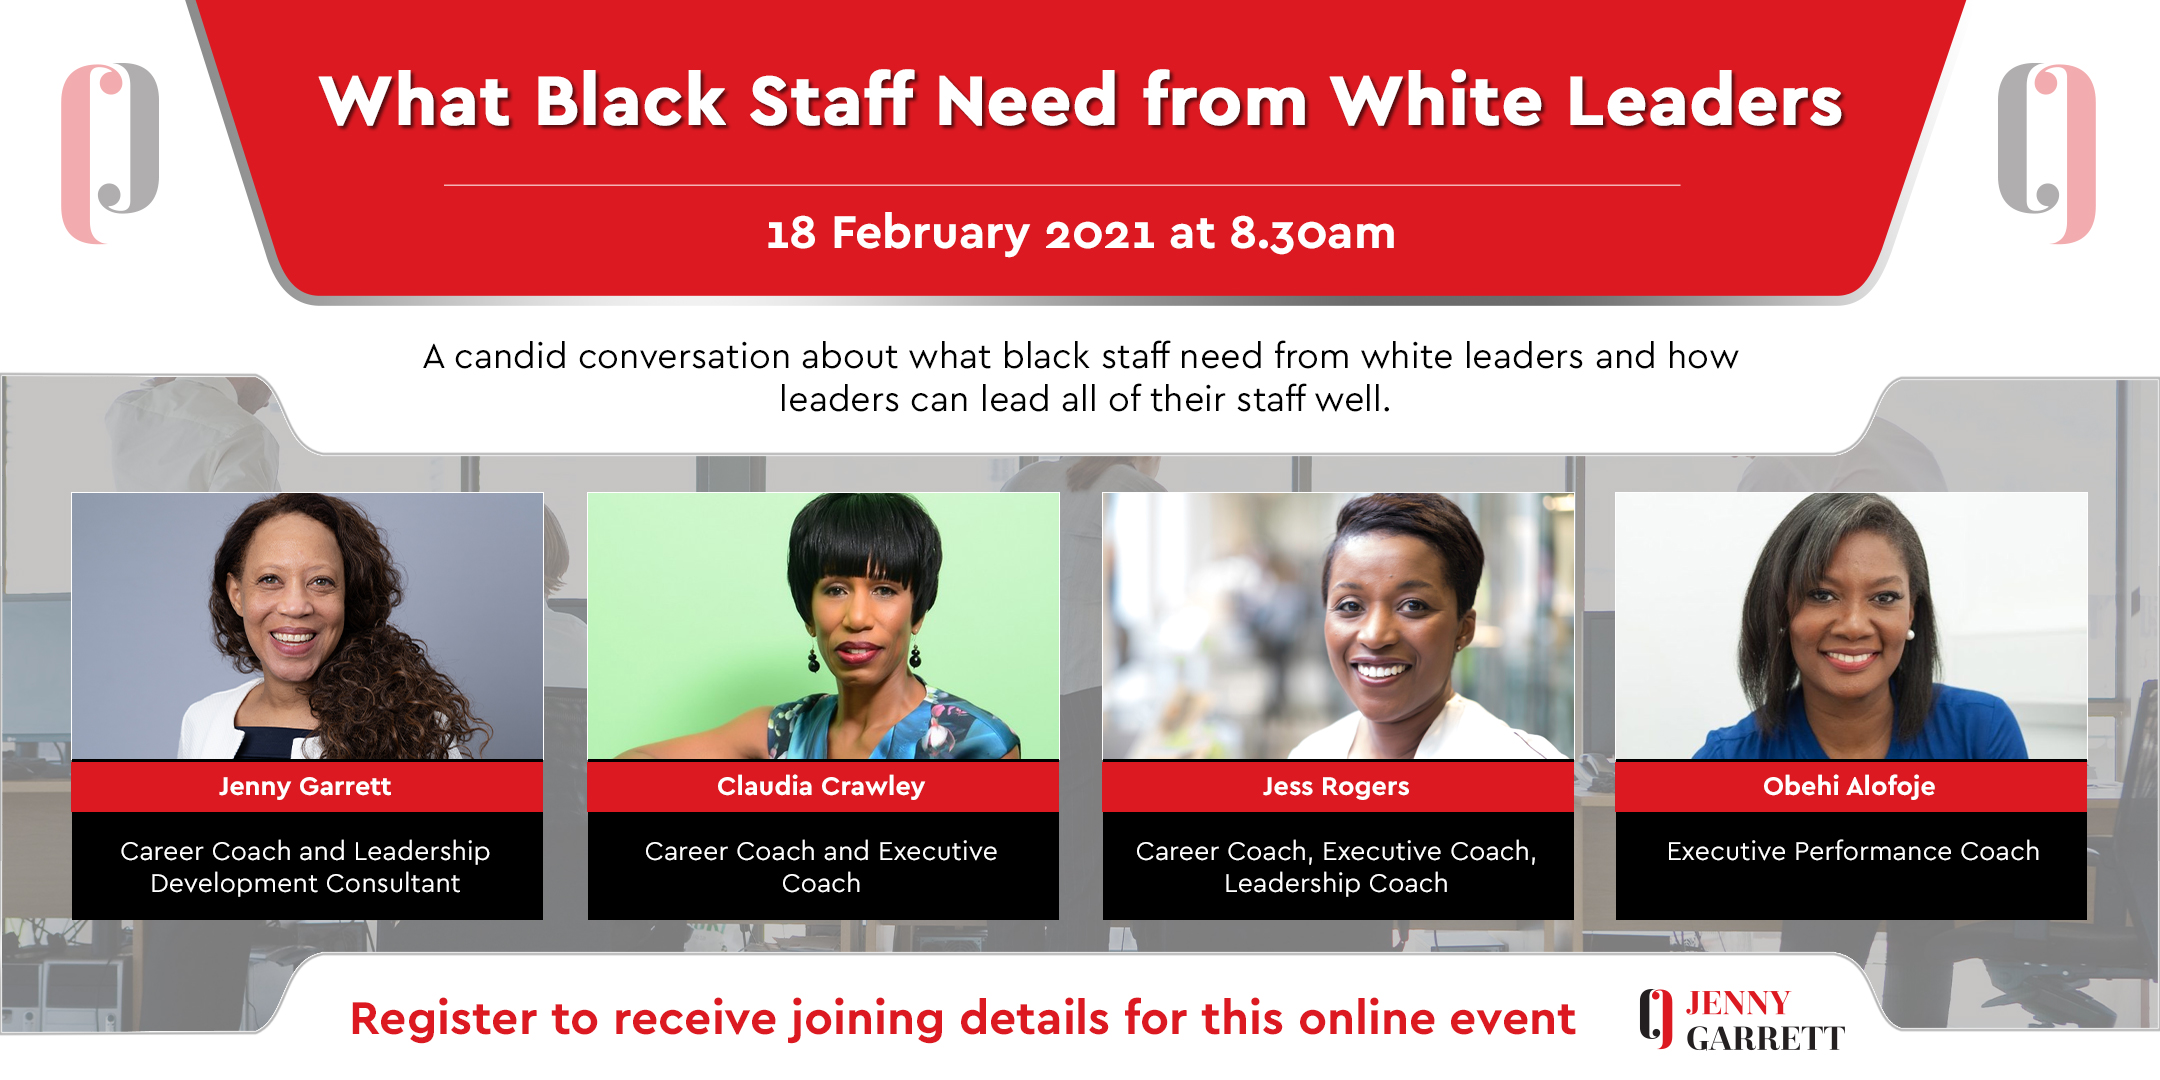 What Black Staff Need From White Leaders